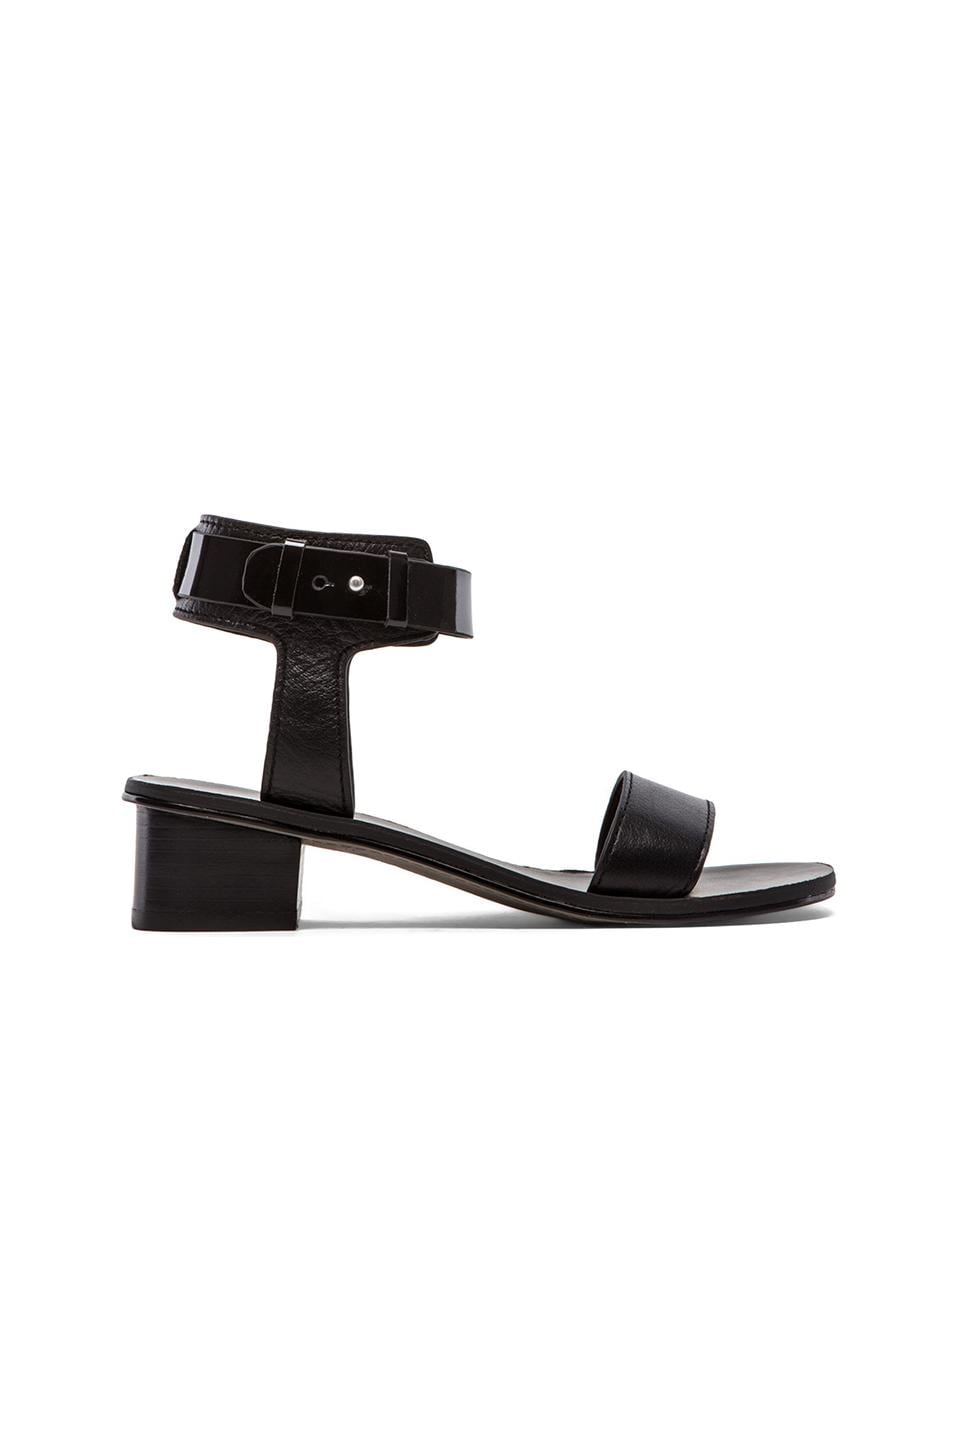 Kelsi Dagger Always Sandal in Black